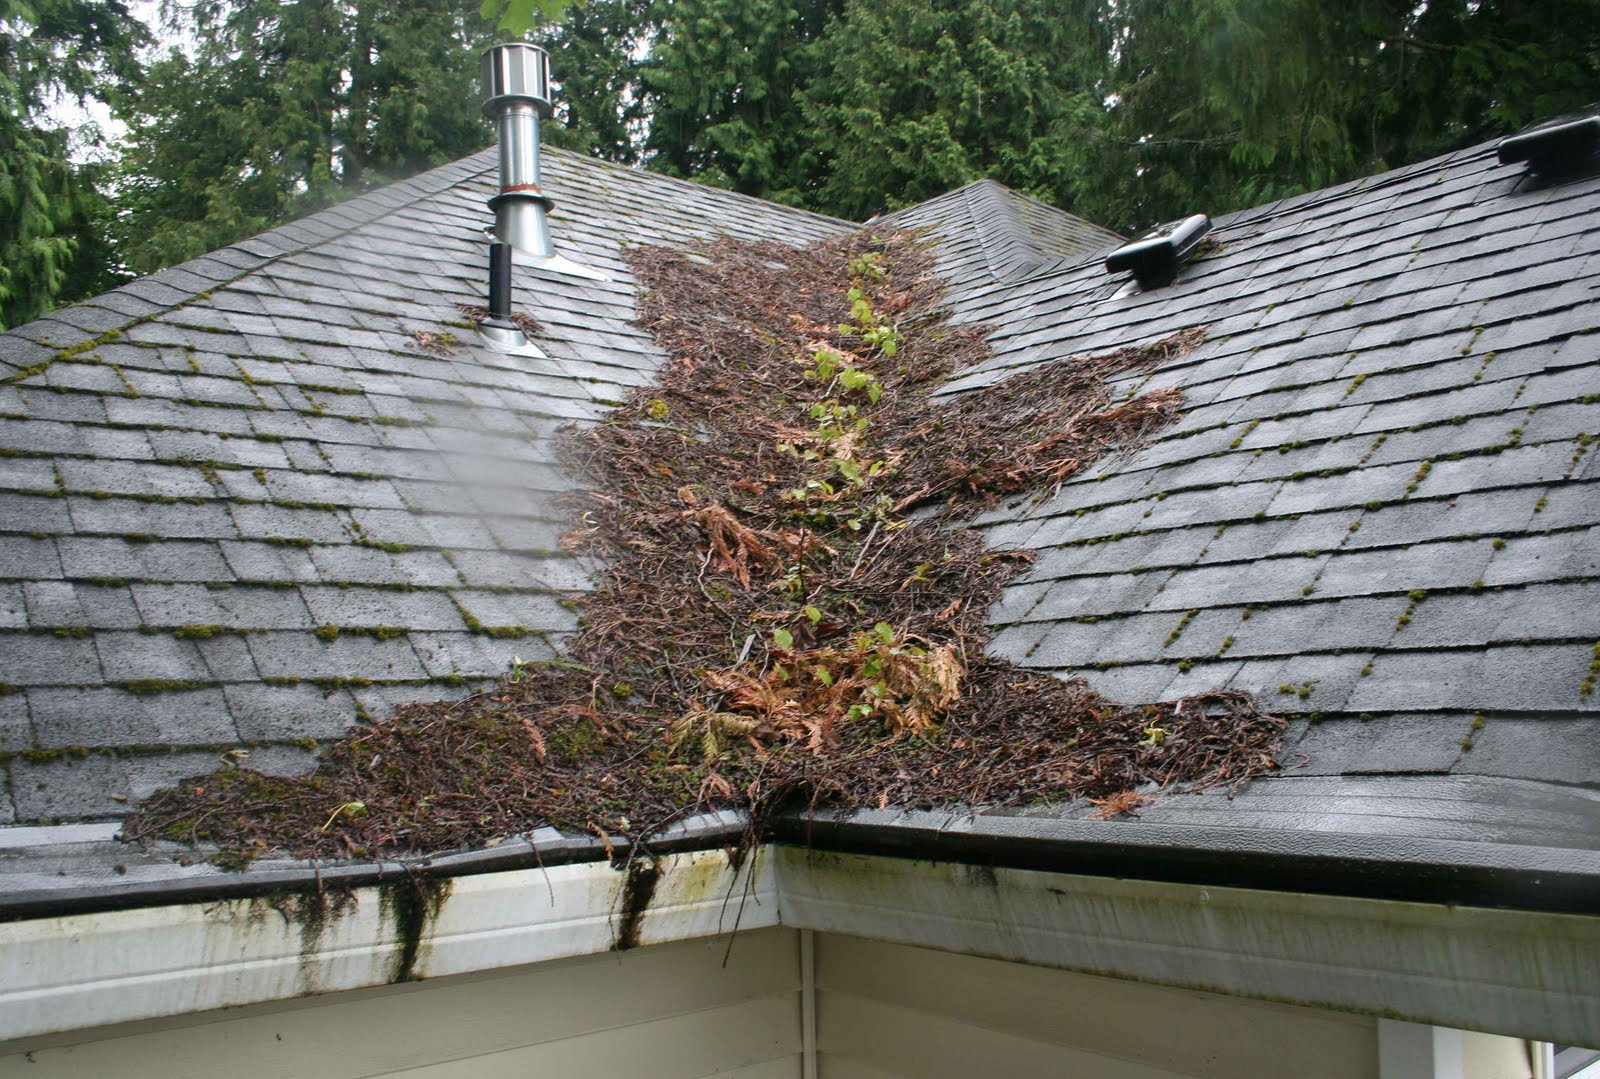 Simple Steps To Extend The Life Of Your Roof And Avoid